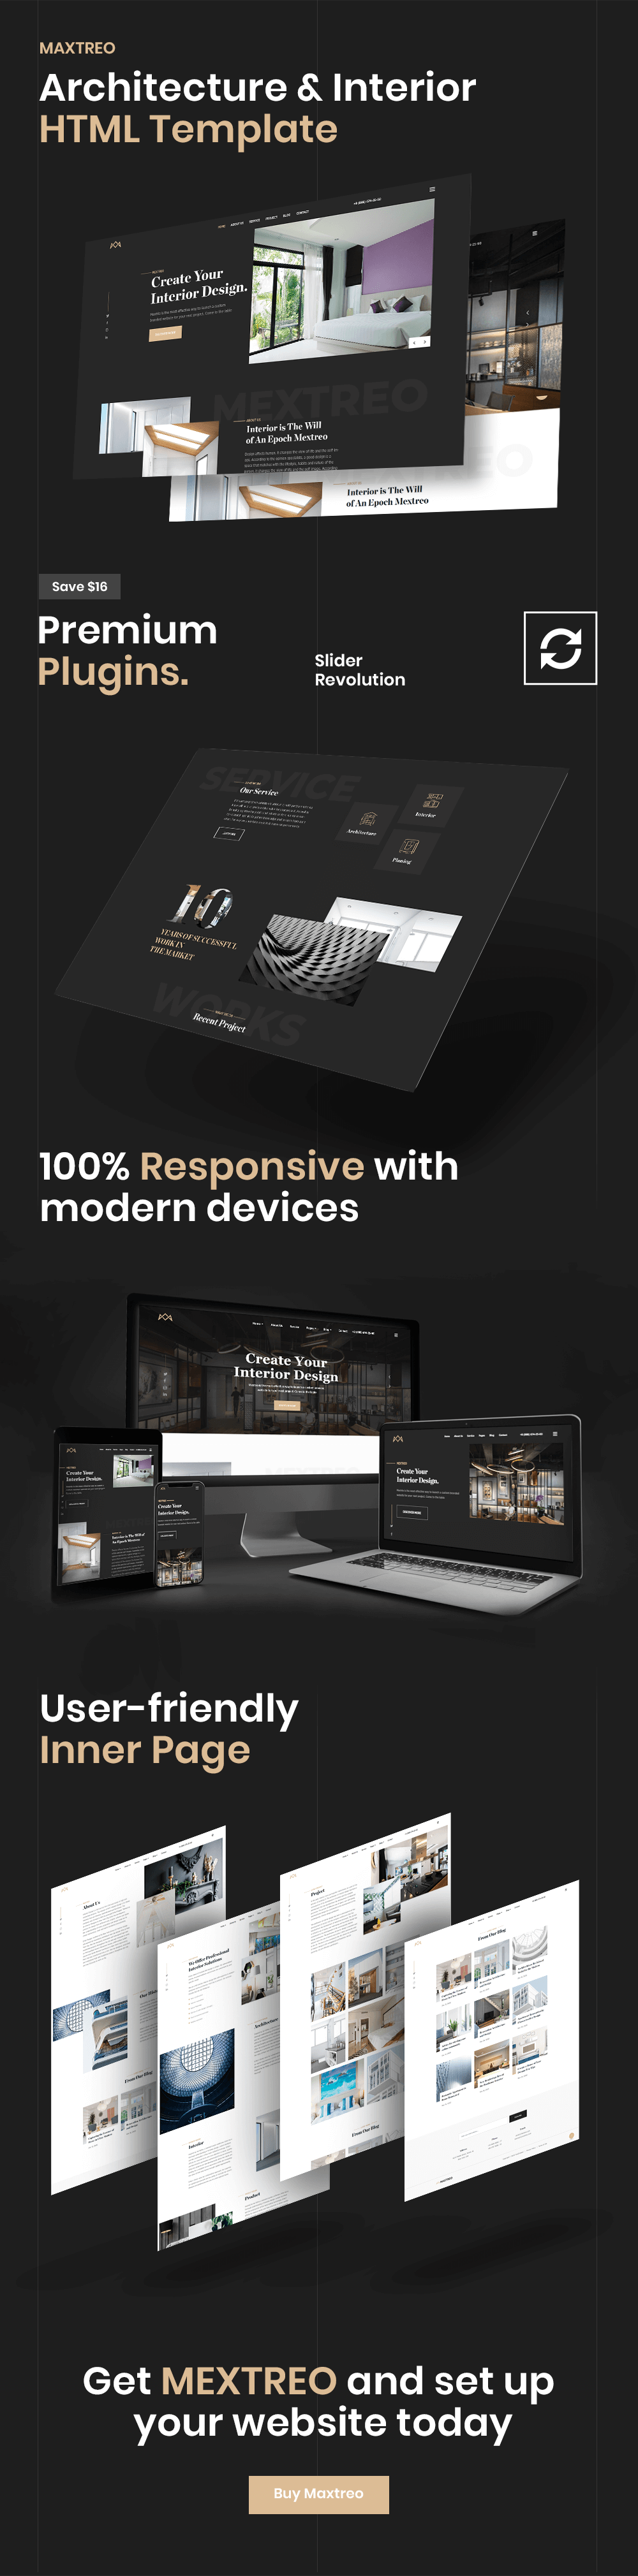 Maxtreo - Architecture and Interior HTML5 Template - 1